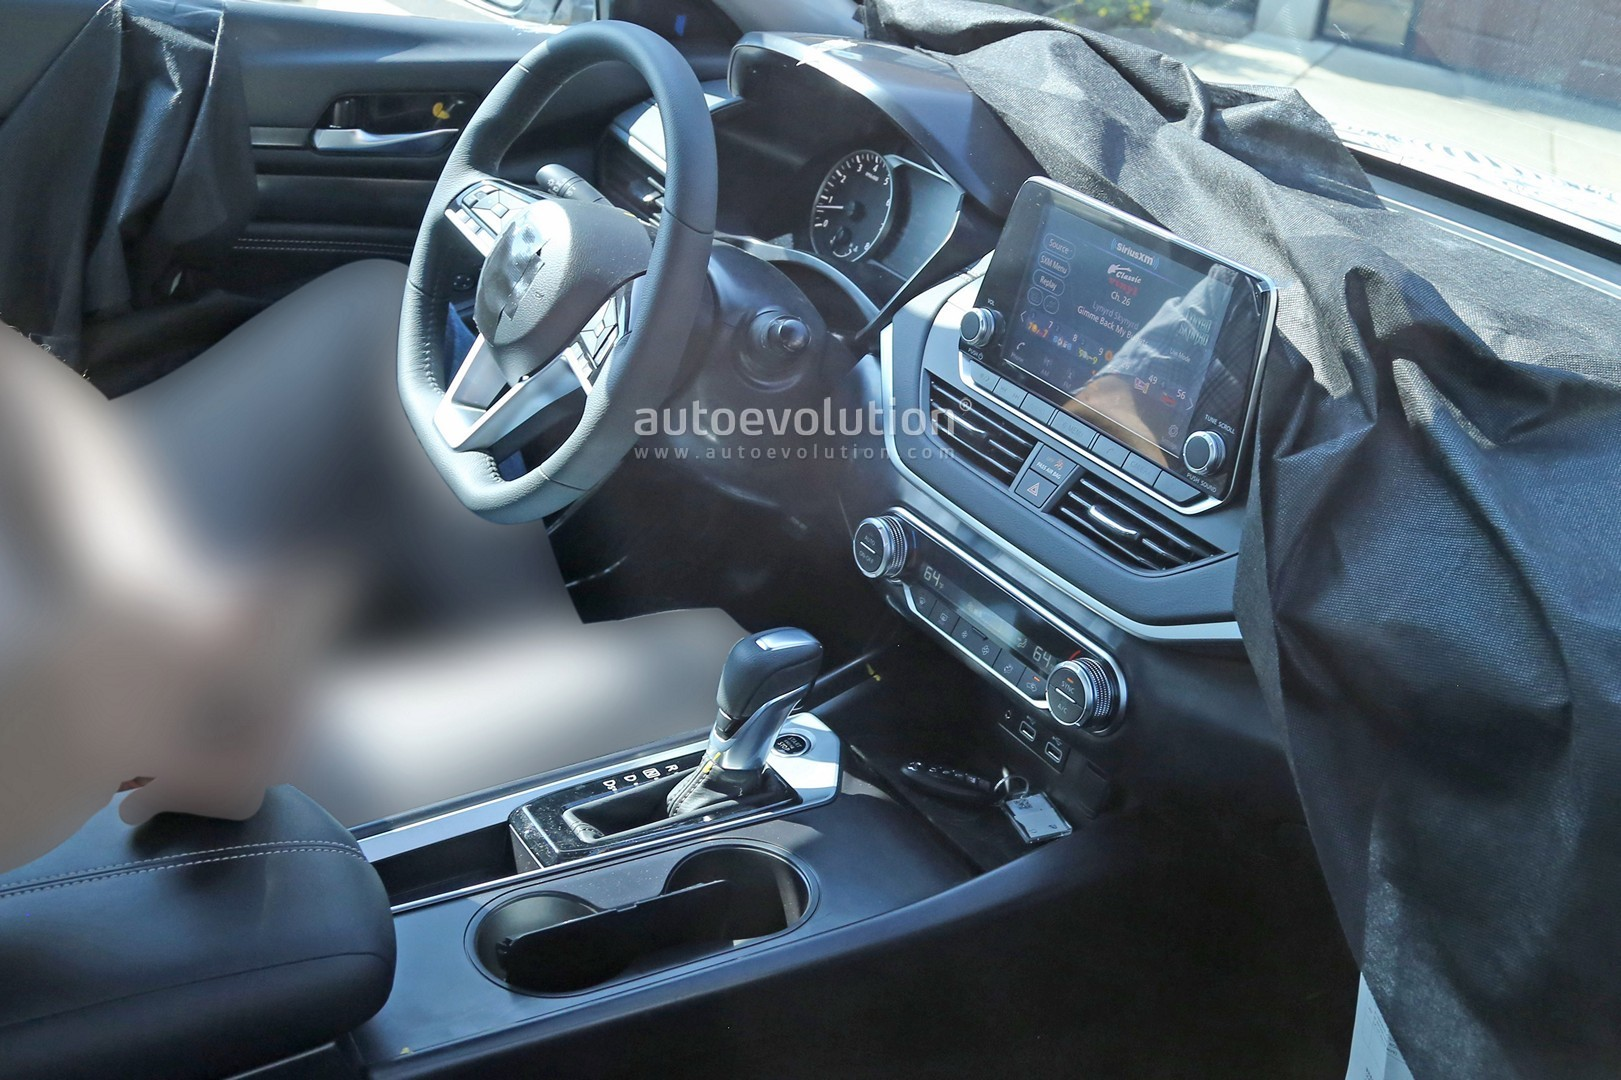 2018 Toyota Camry Inside >> Spyshots: 2019 Nissan Altima Shows Interior, Model Targets The Accord and Camry - autoevolution